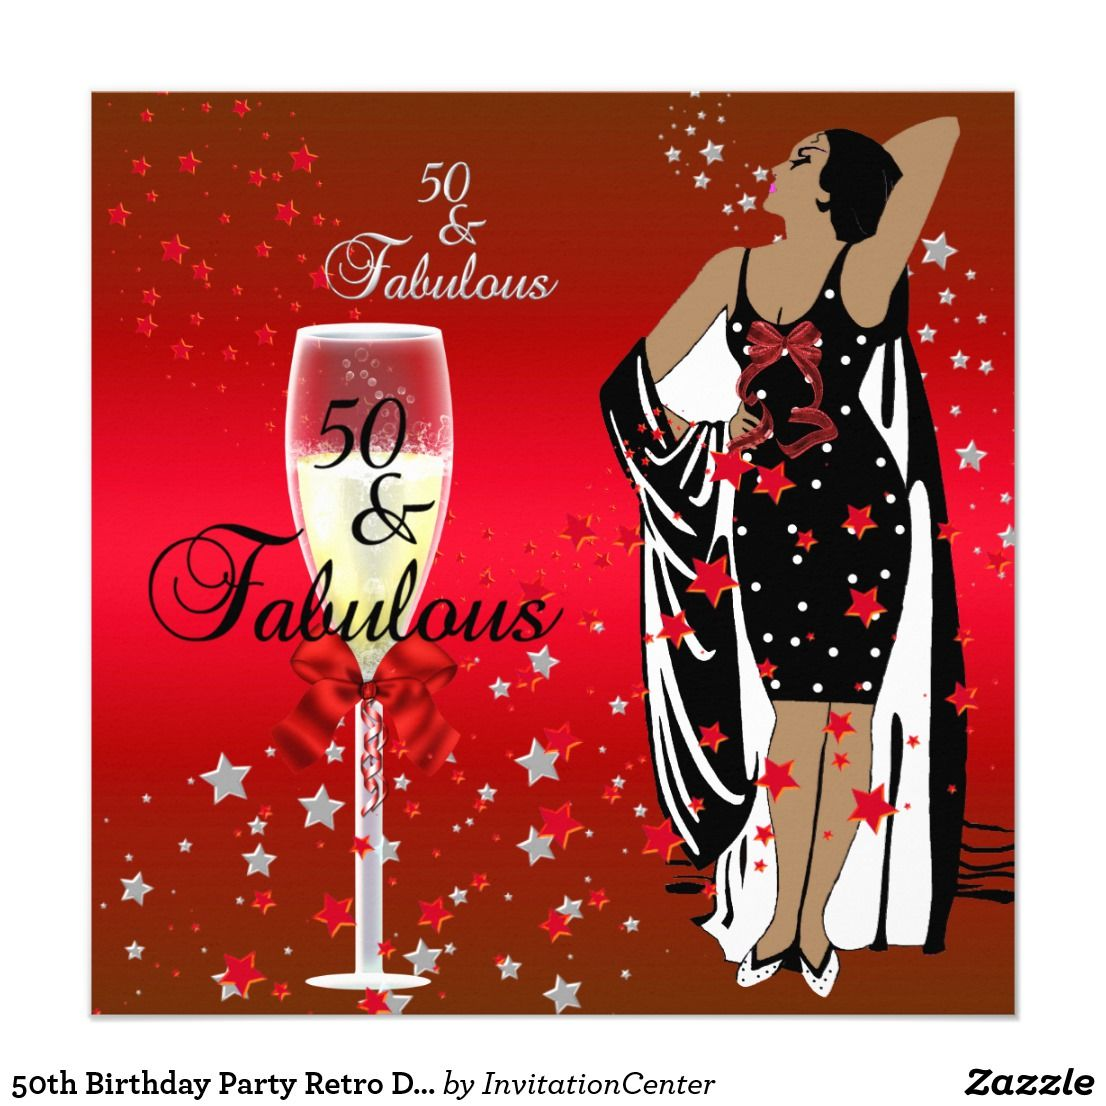 50th birthday party retro diva art deco red black invitation